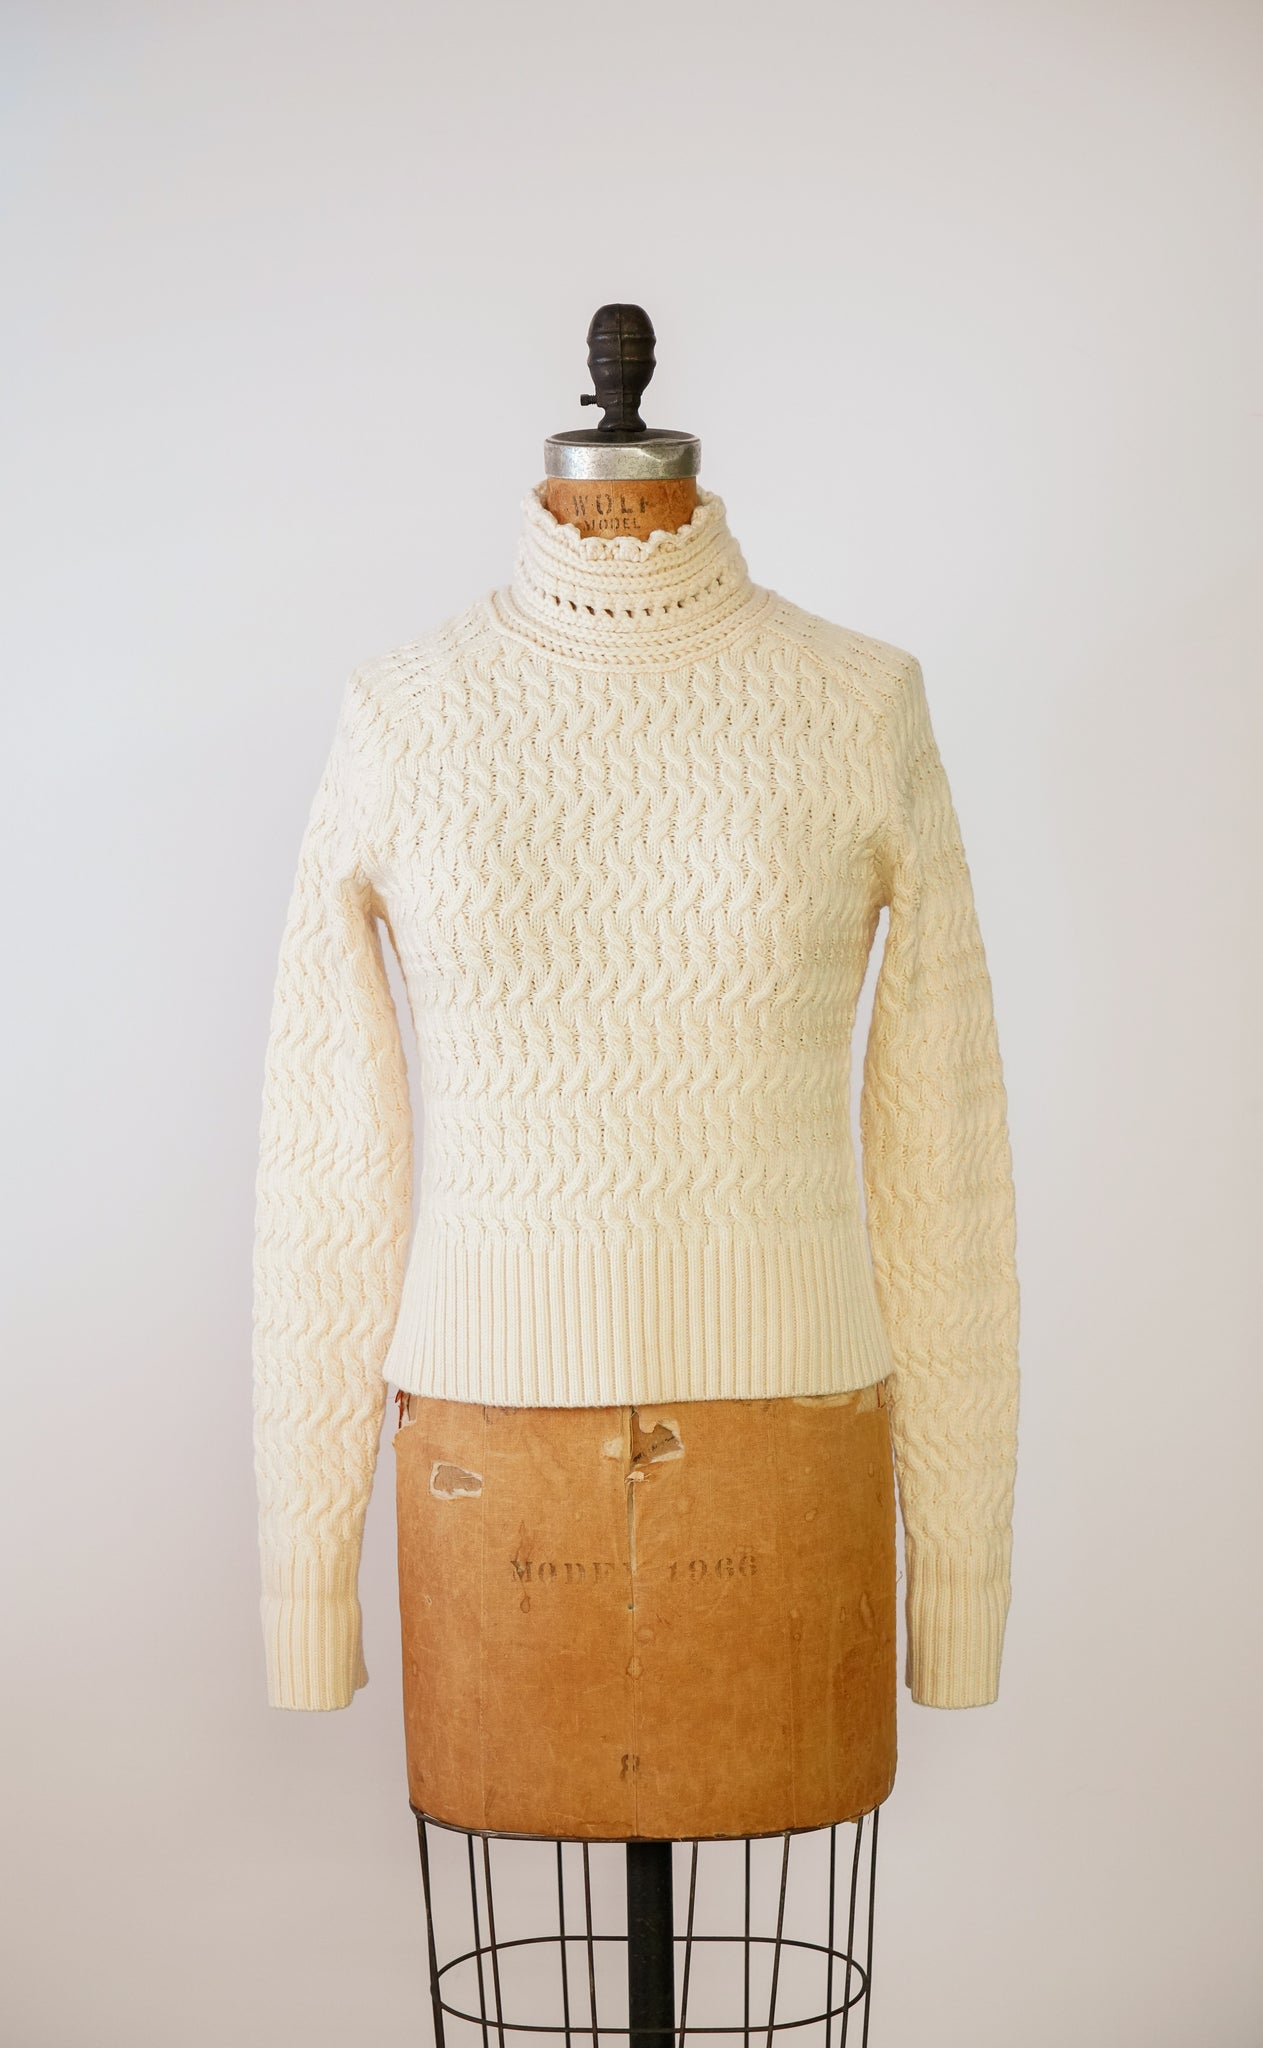 The 'Dyer' Rollneck in Parchemin